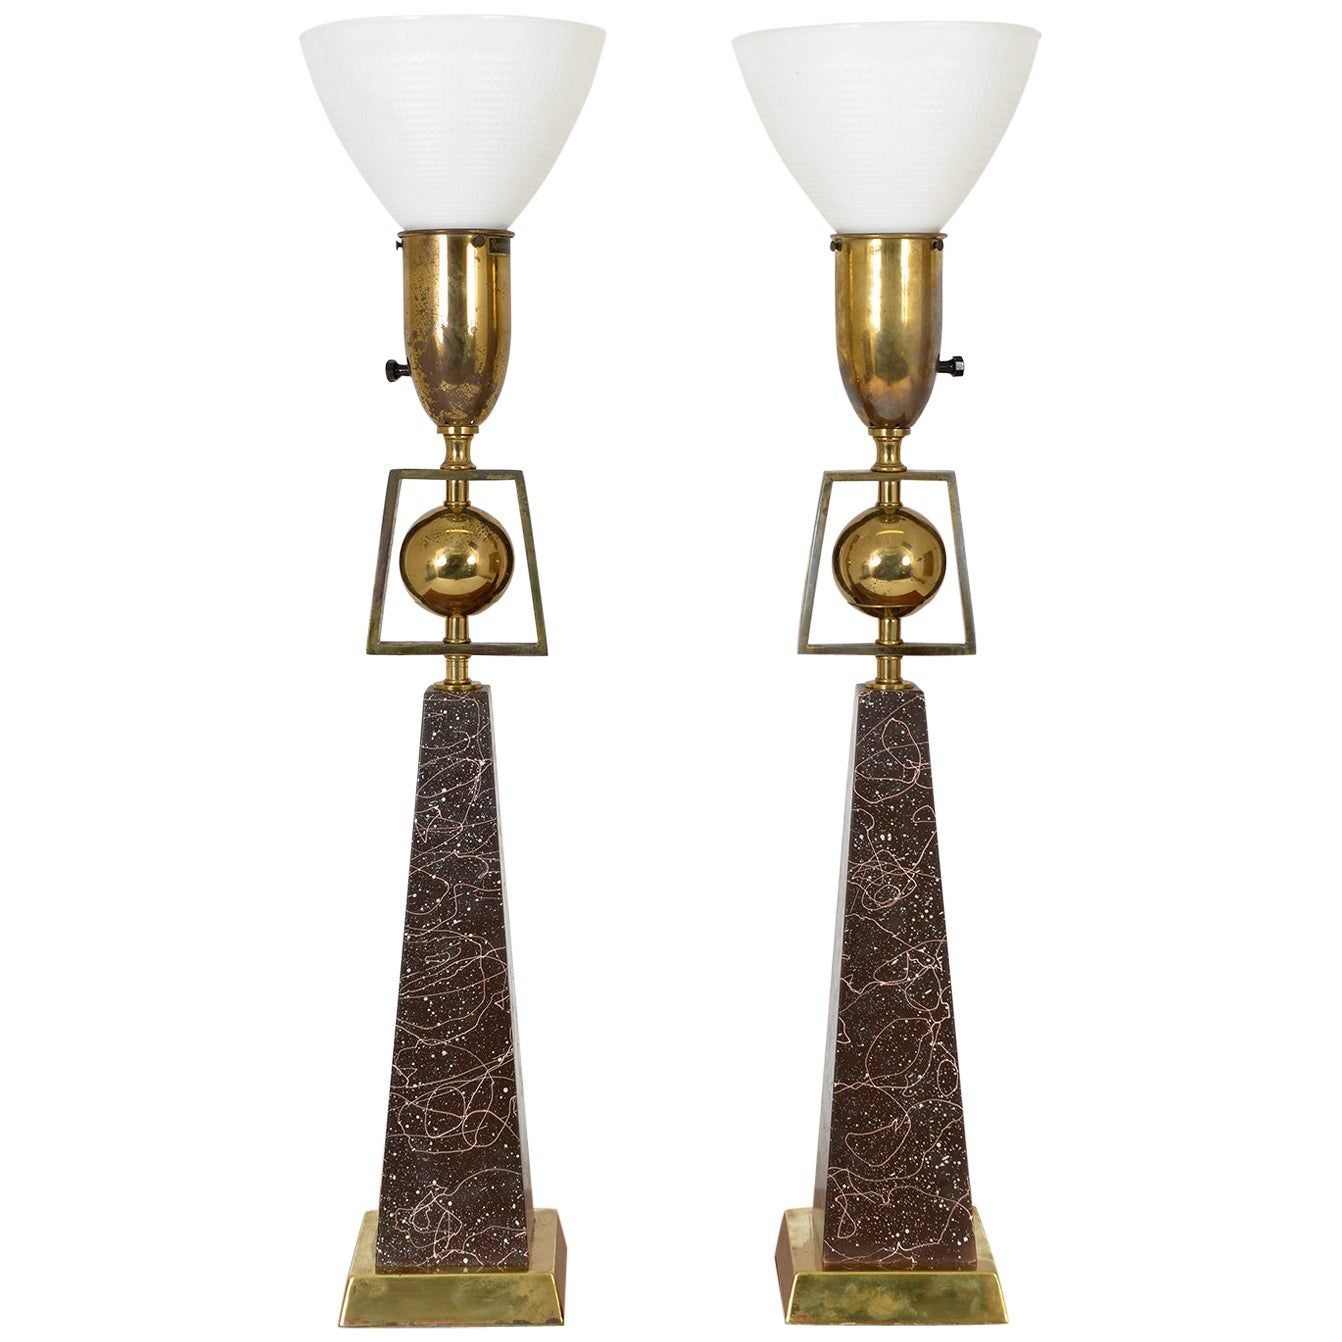 Pair of American Mid-Century Modern Obelisk Table Lamps by Rembrandt Lighting